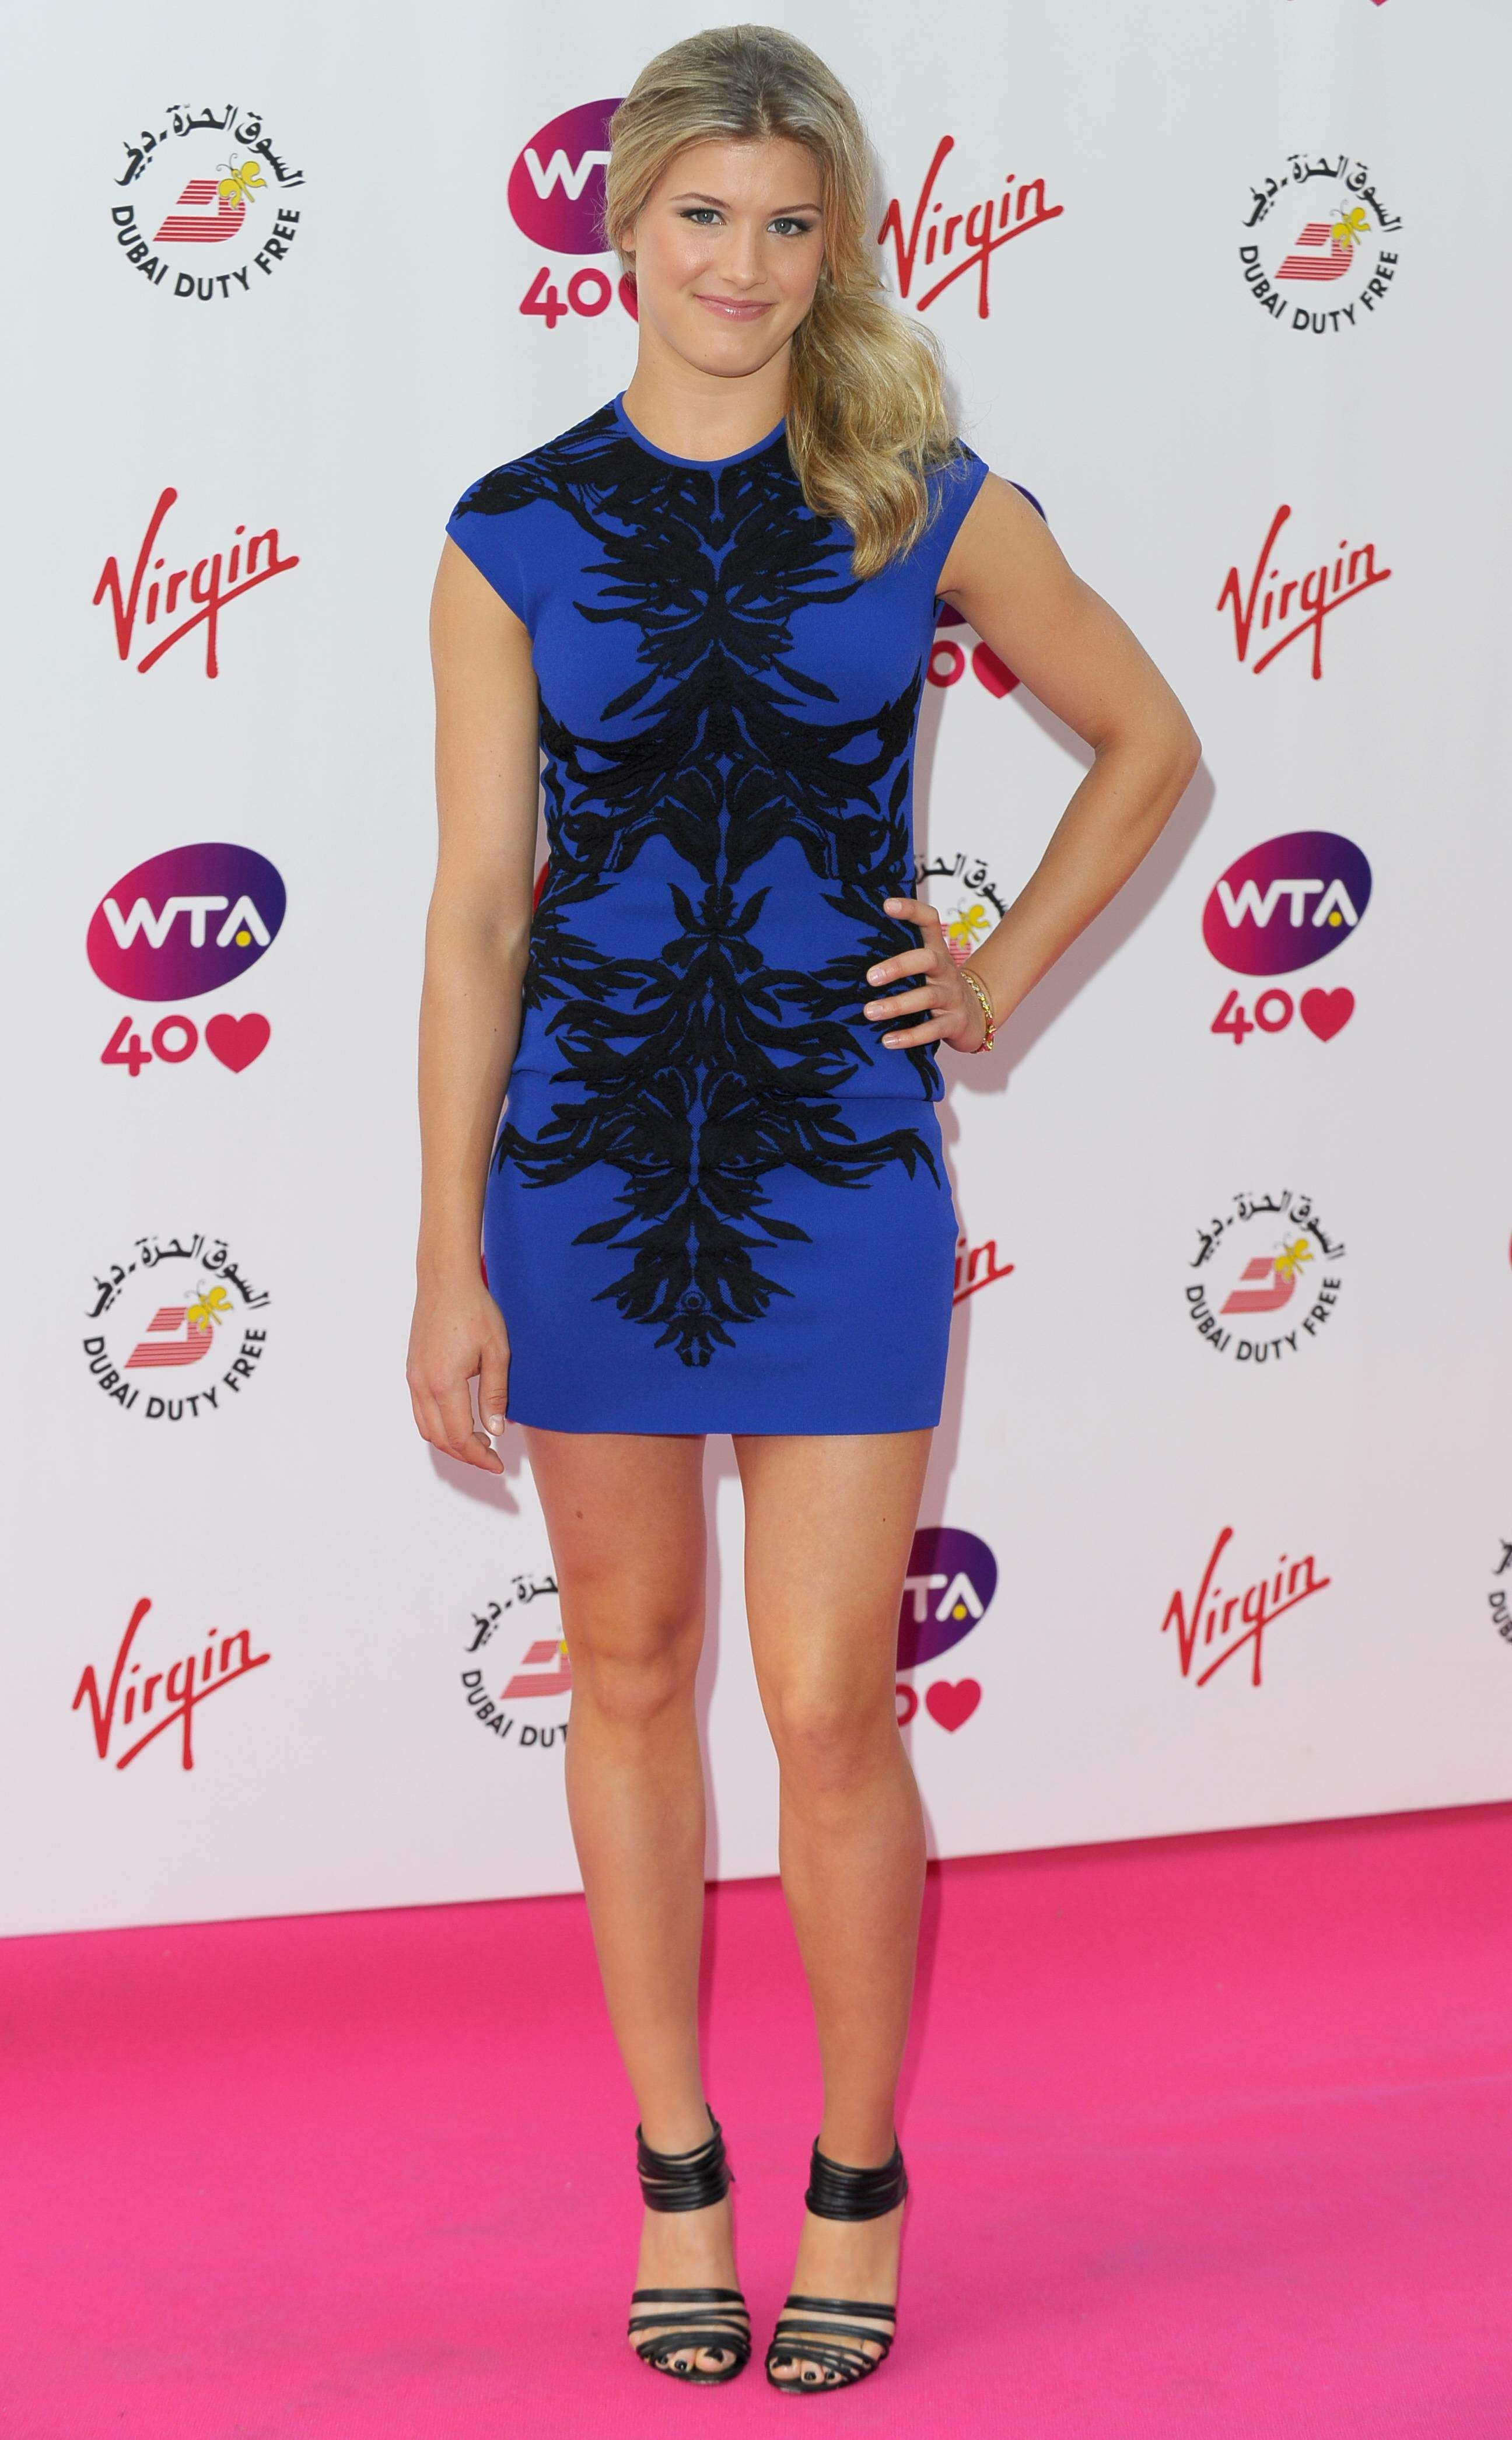 Eugenie Bouchard Pre Wimbledon Party Held At The Kensington Roof Gardens June 20 2013 Wta Wimbledon Party Eugenie Bouchard Hottest Models